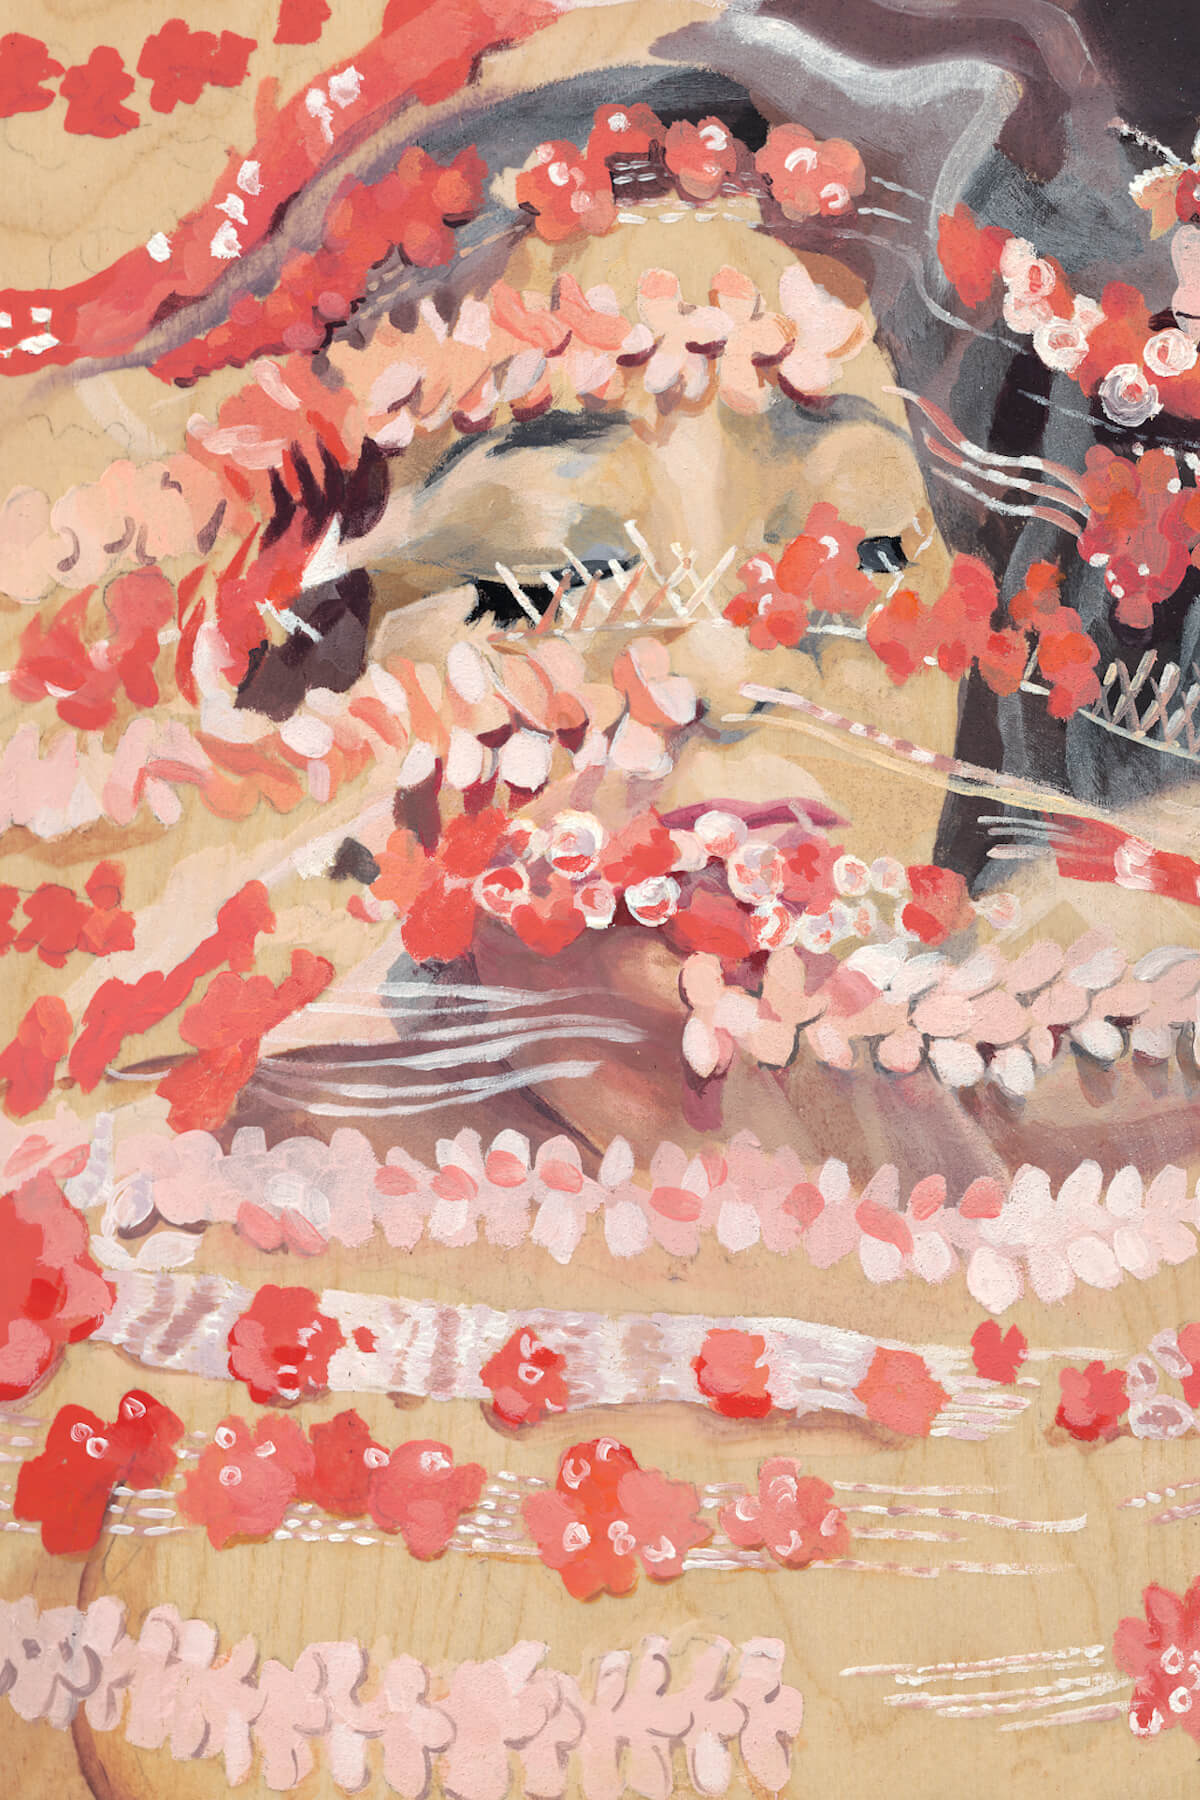 A painting of a female face with dark hair, eyes closed, almost entirely obscured by rows of painted flowers in pink, red, and white which flow over the figure.